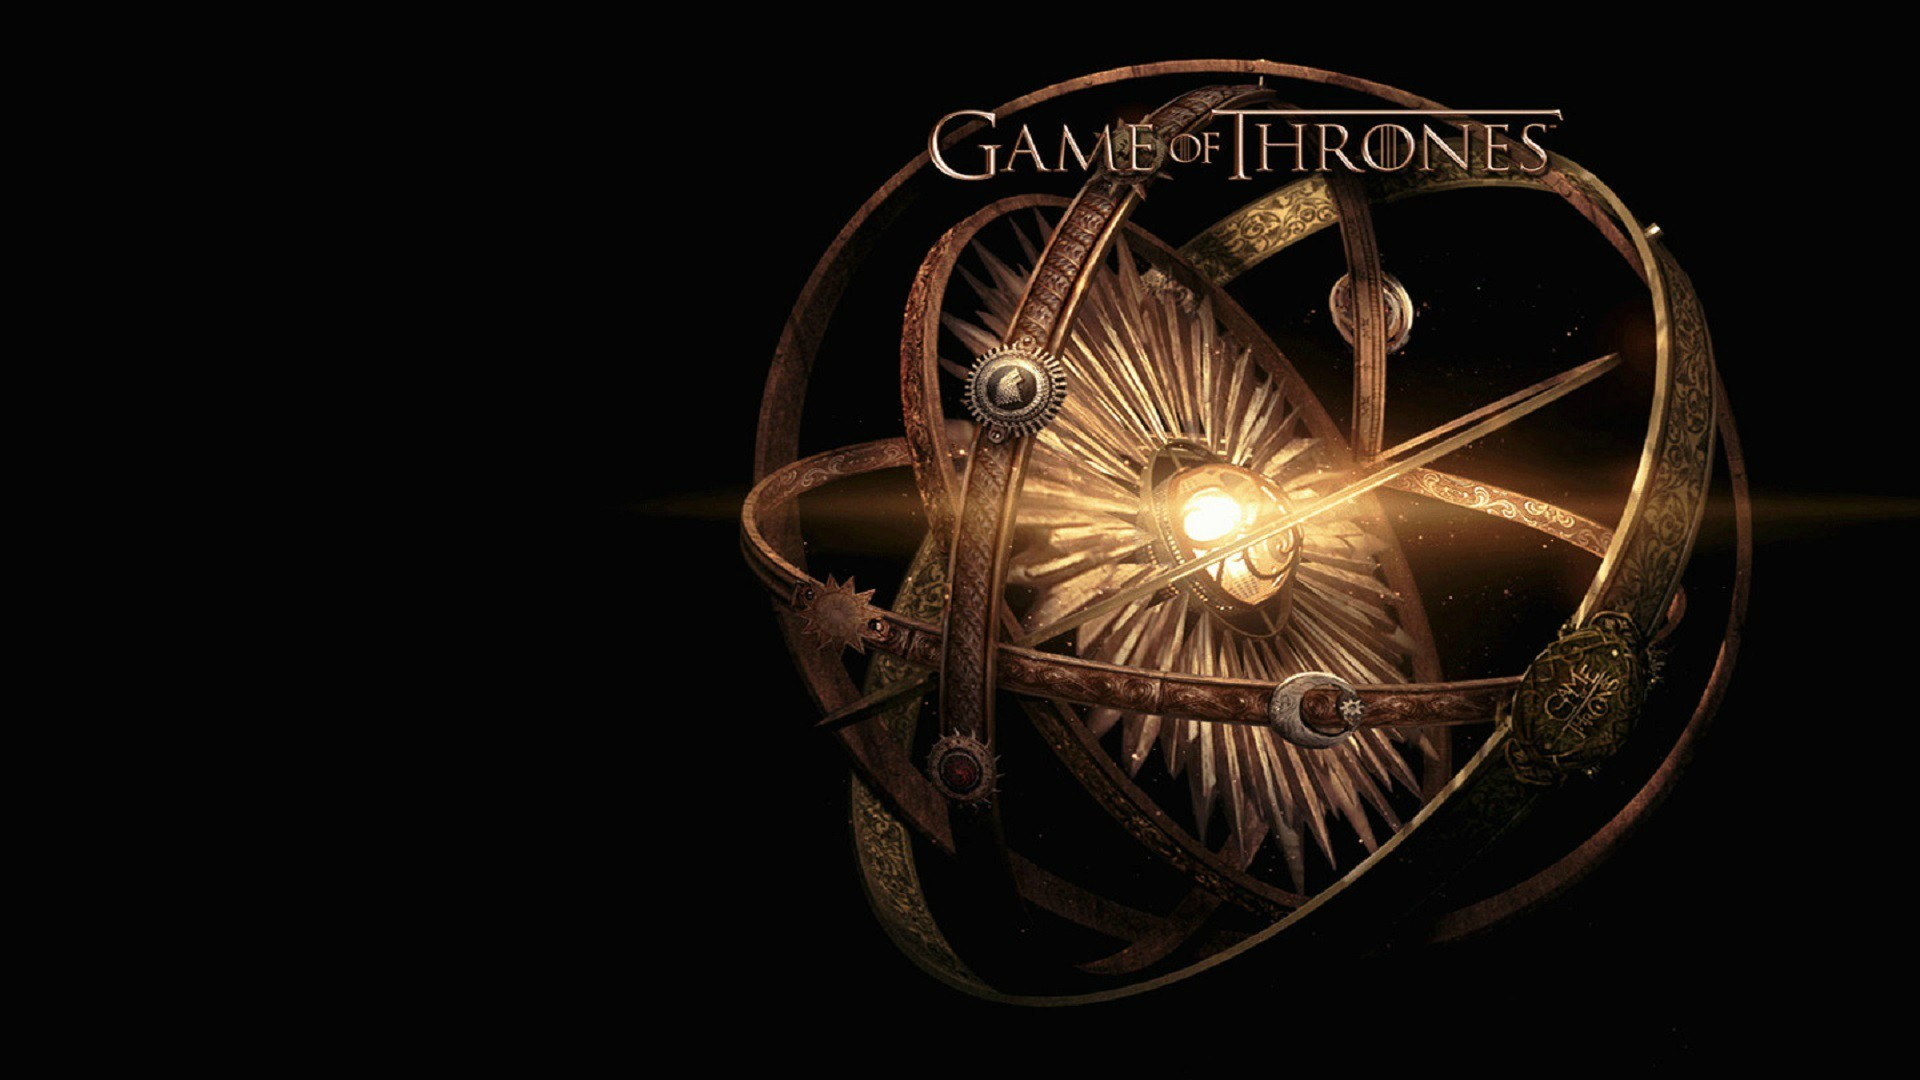 Hd Wallpapers Backgrounds For Game Of Thrones Free For: HBO Game Of Thrones Wallpapers (42+ Images